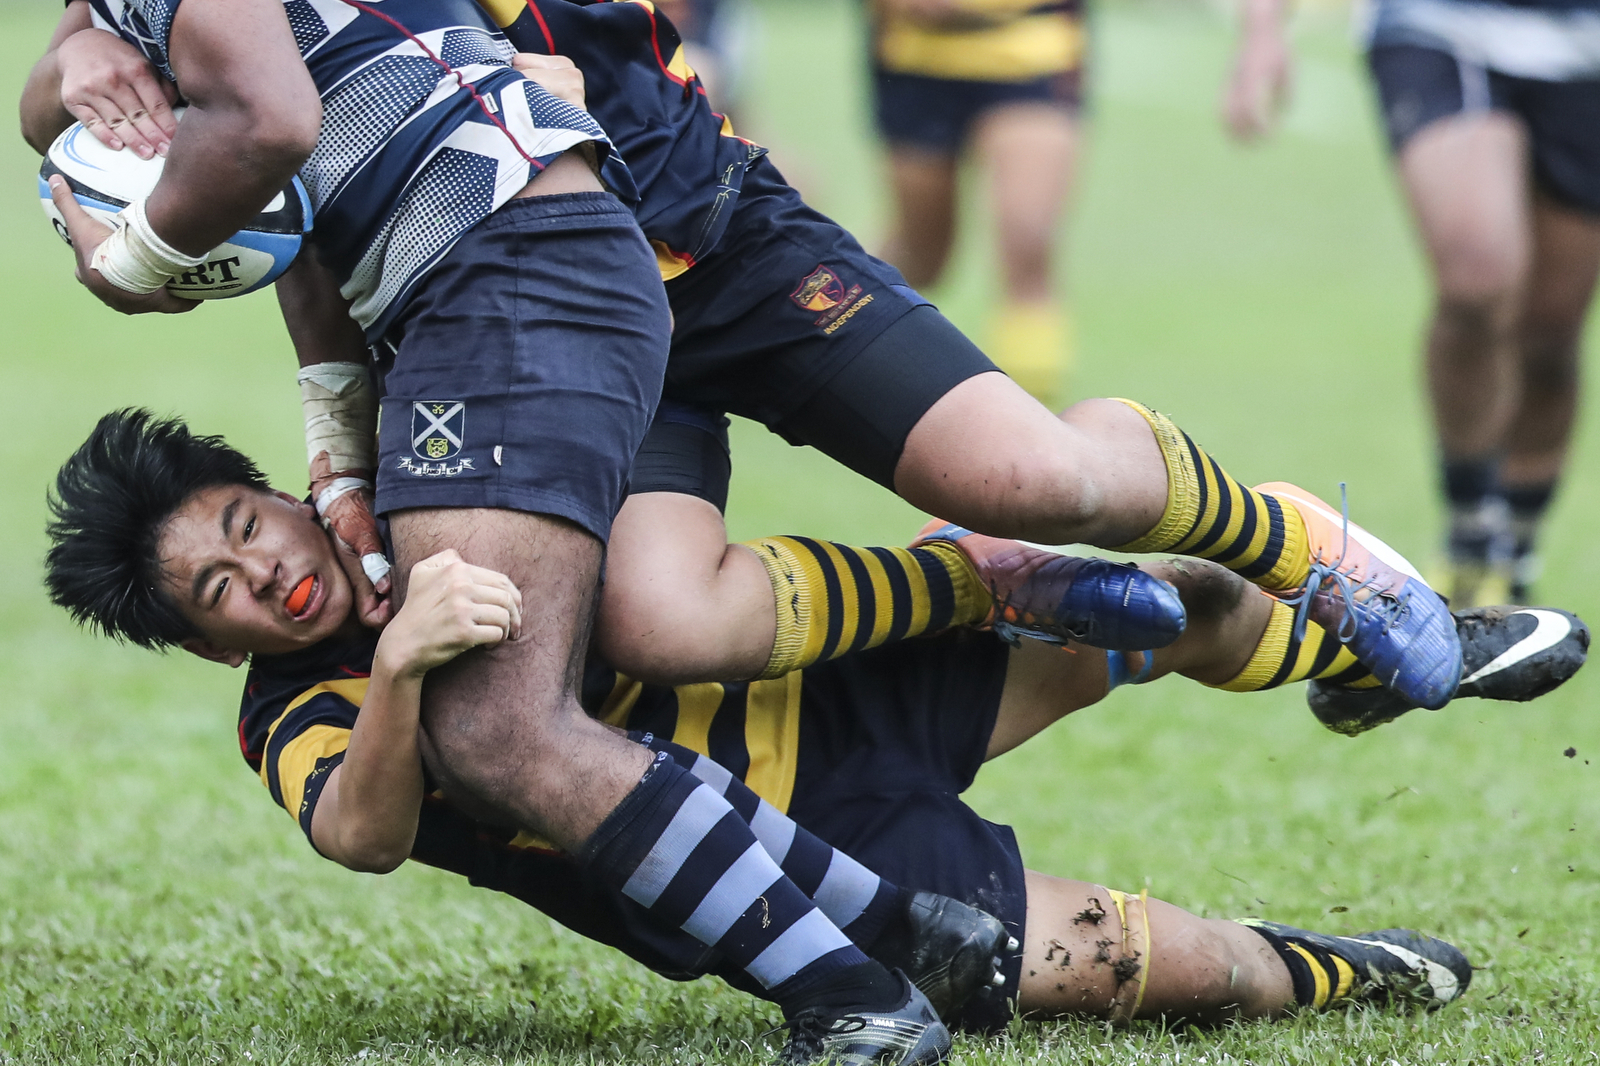 Iain Yeow of Anglo-Chinese School (Independent) falls after a tackle on Umar Mohamed Sha'ari of St. Andrew's Secondary School during the National Schools boys' 'B' Division rugby final at Queenstown Stadium on March 28,2018 in Singapore. (Photo © Yong Teck Lim/Red Sports)